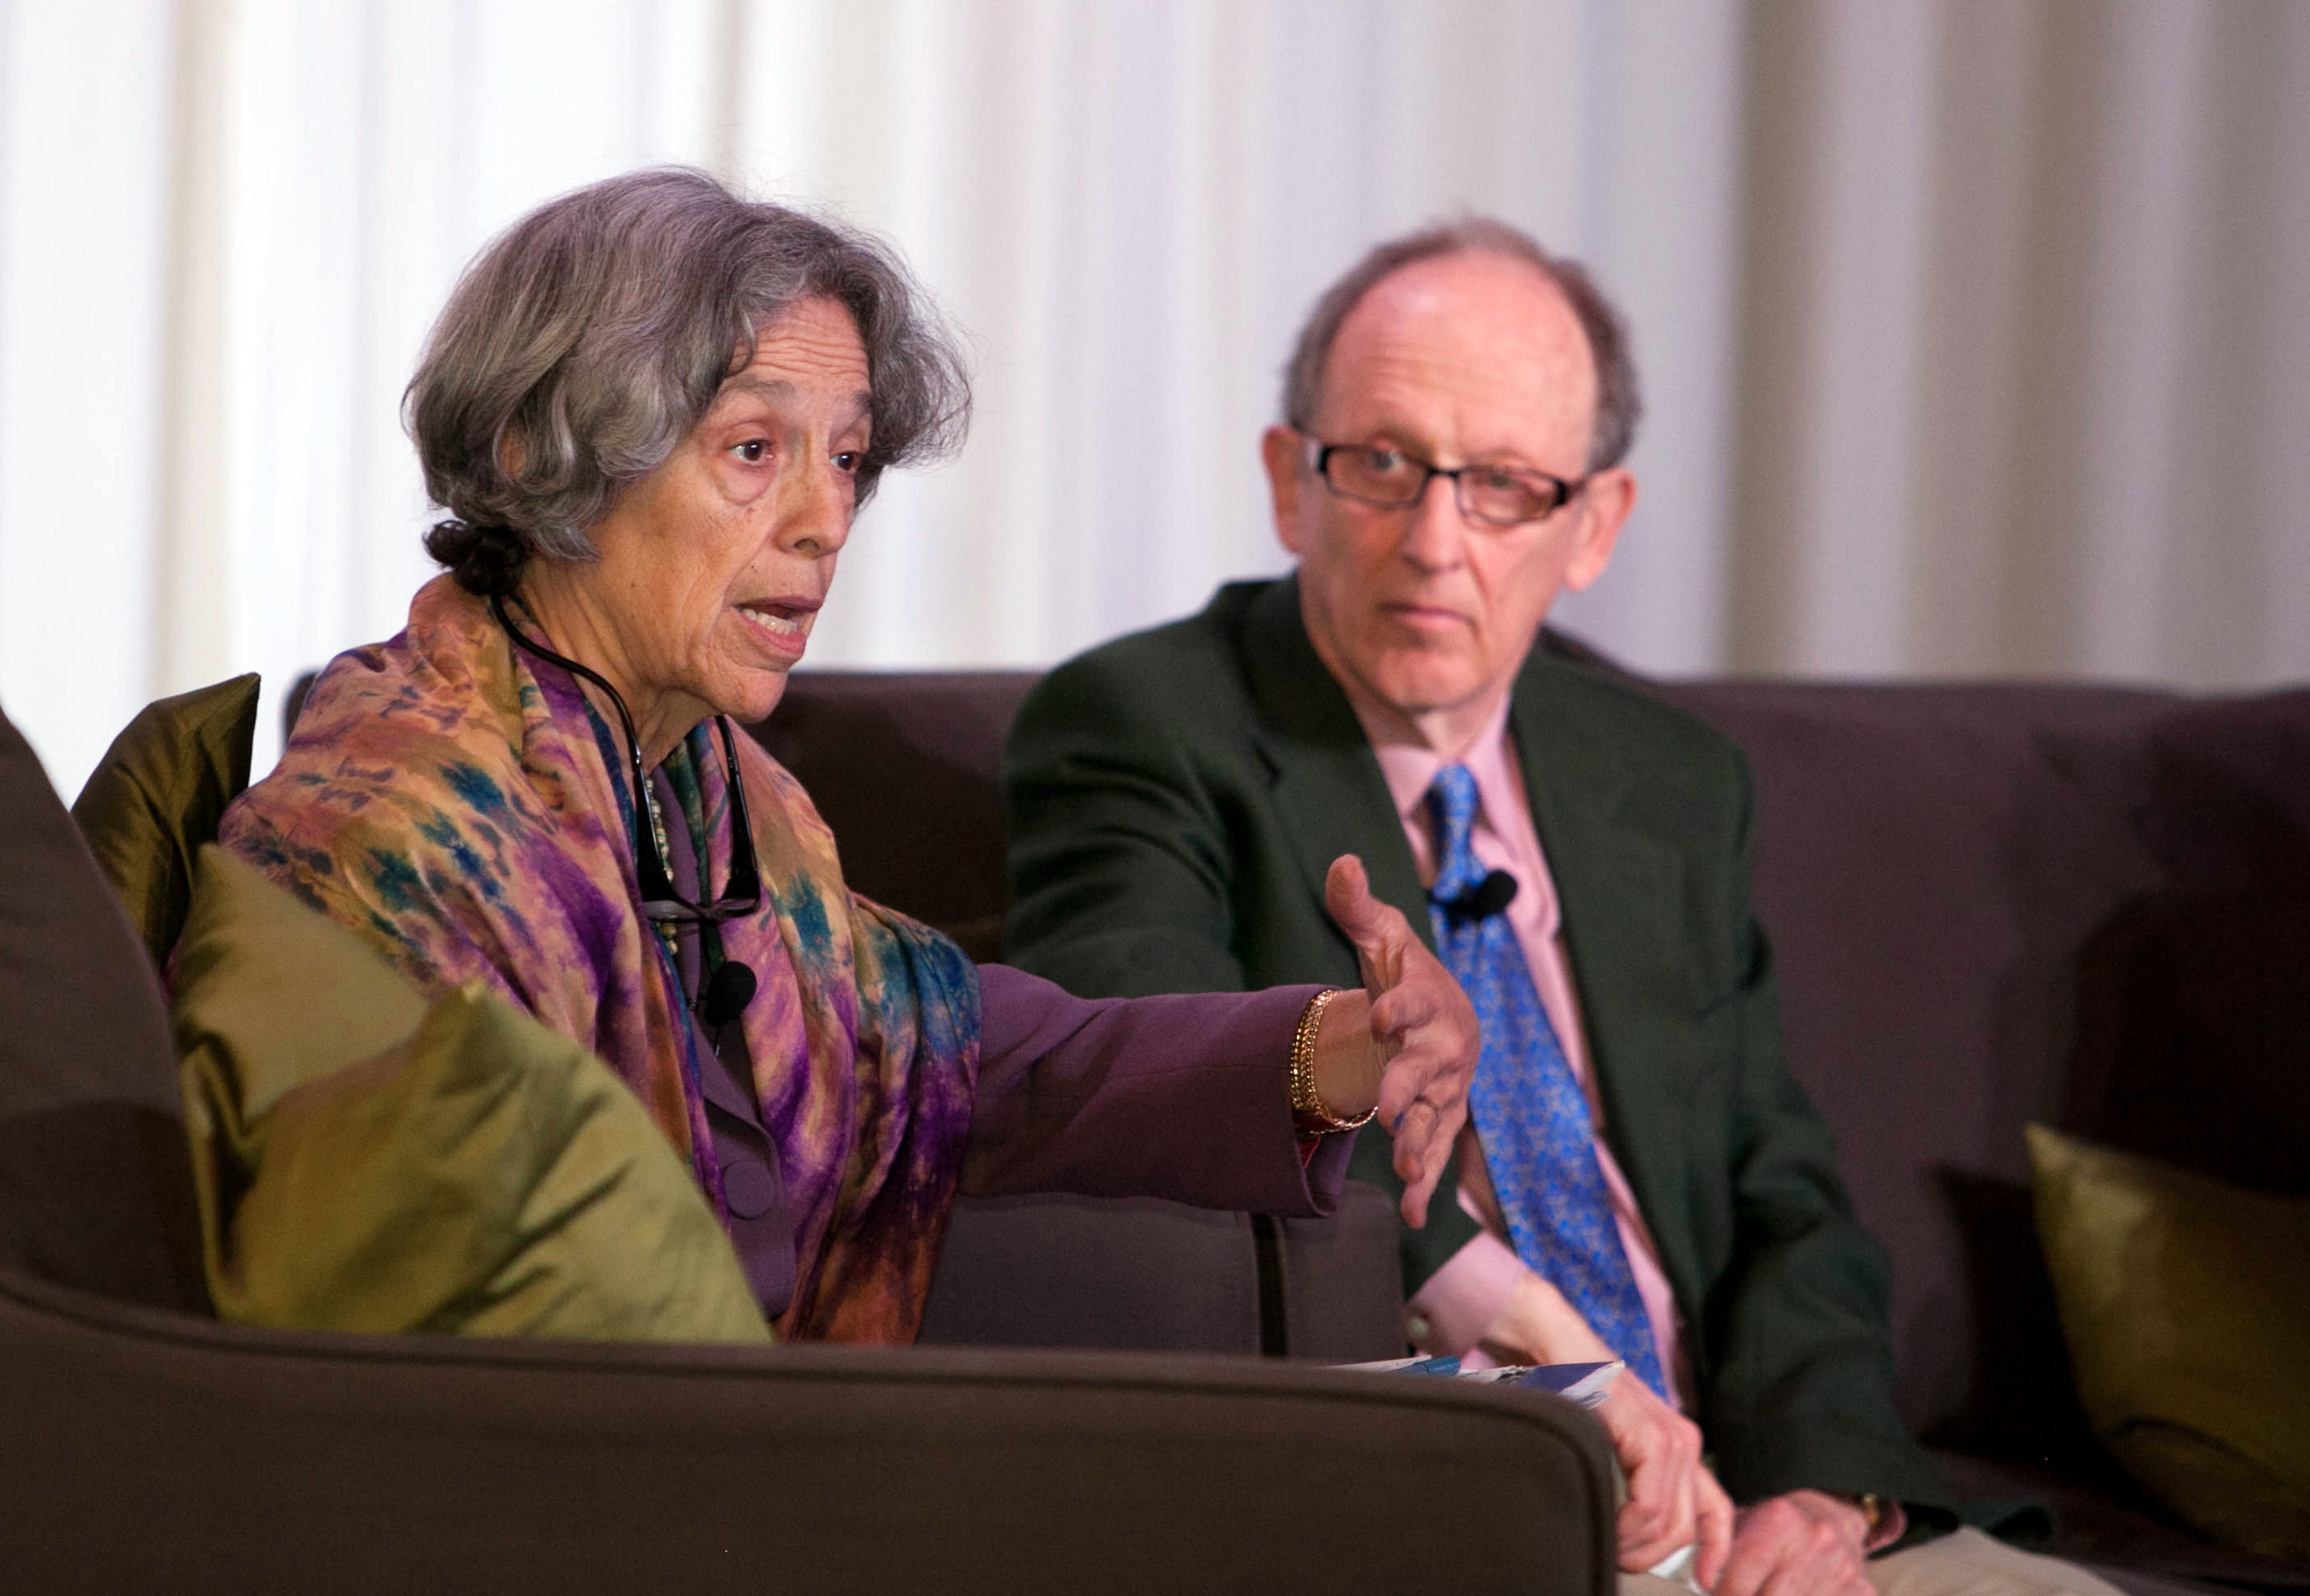 Ruth Messinger & Dan Chirot